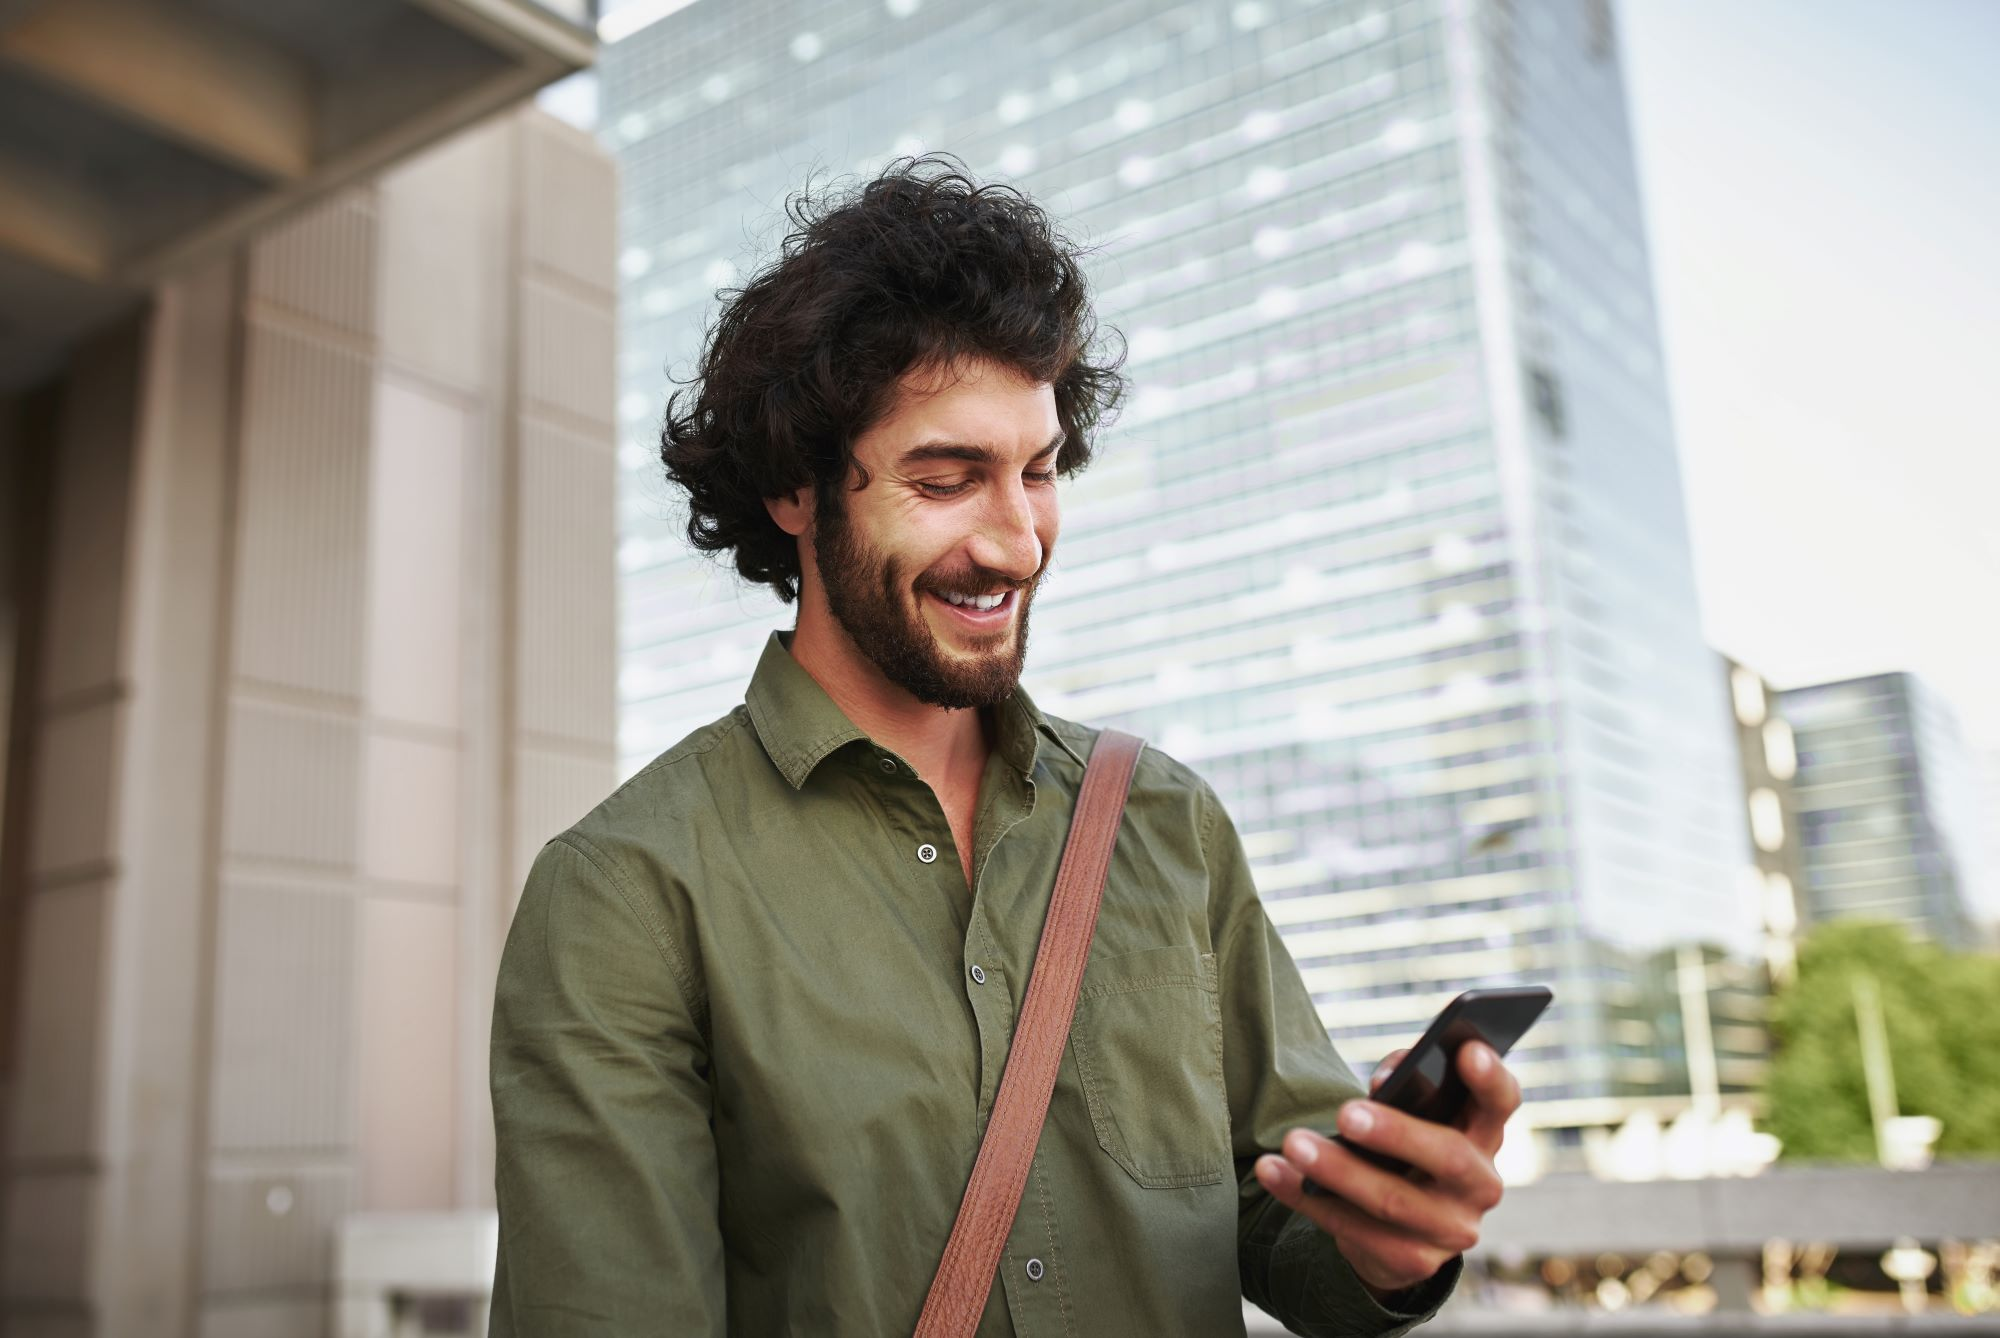 Man smiling as he does the census on his smartphone